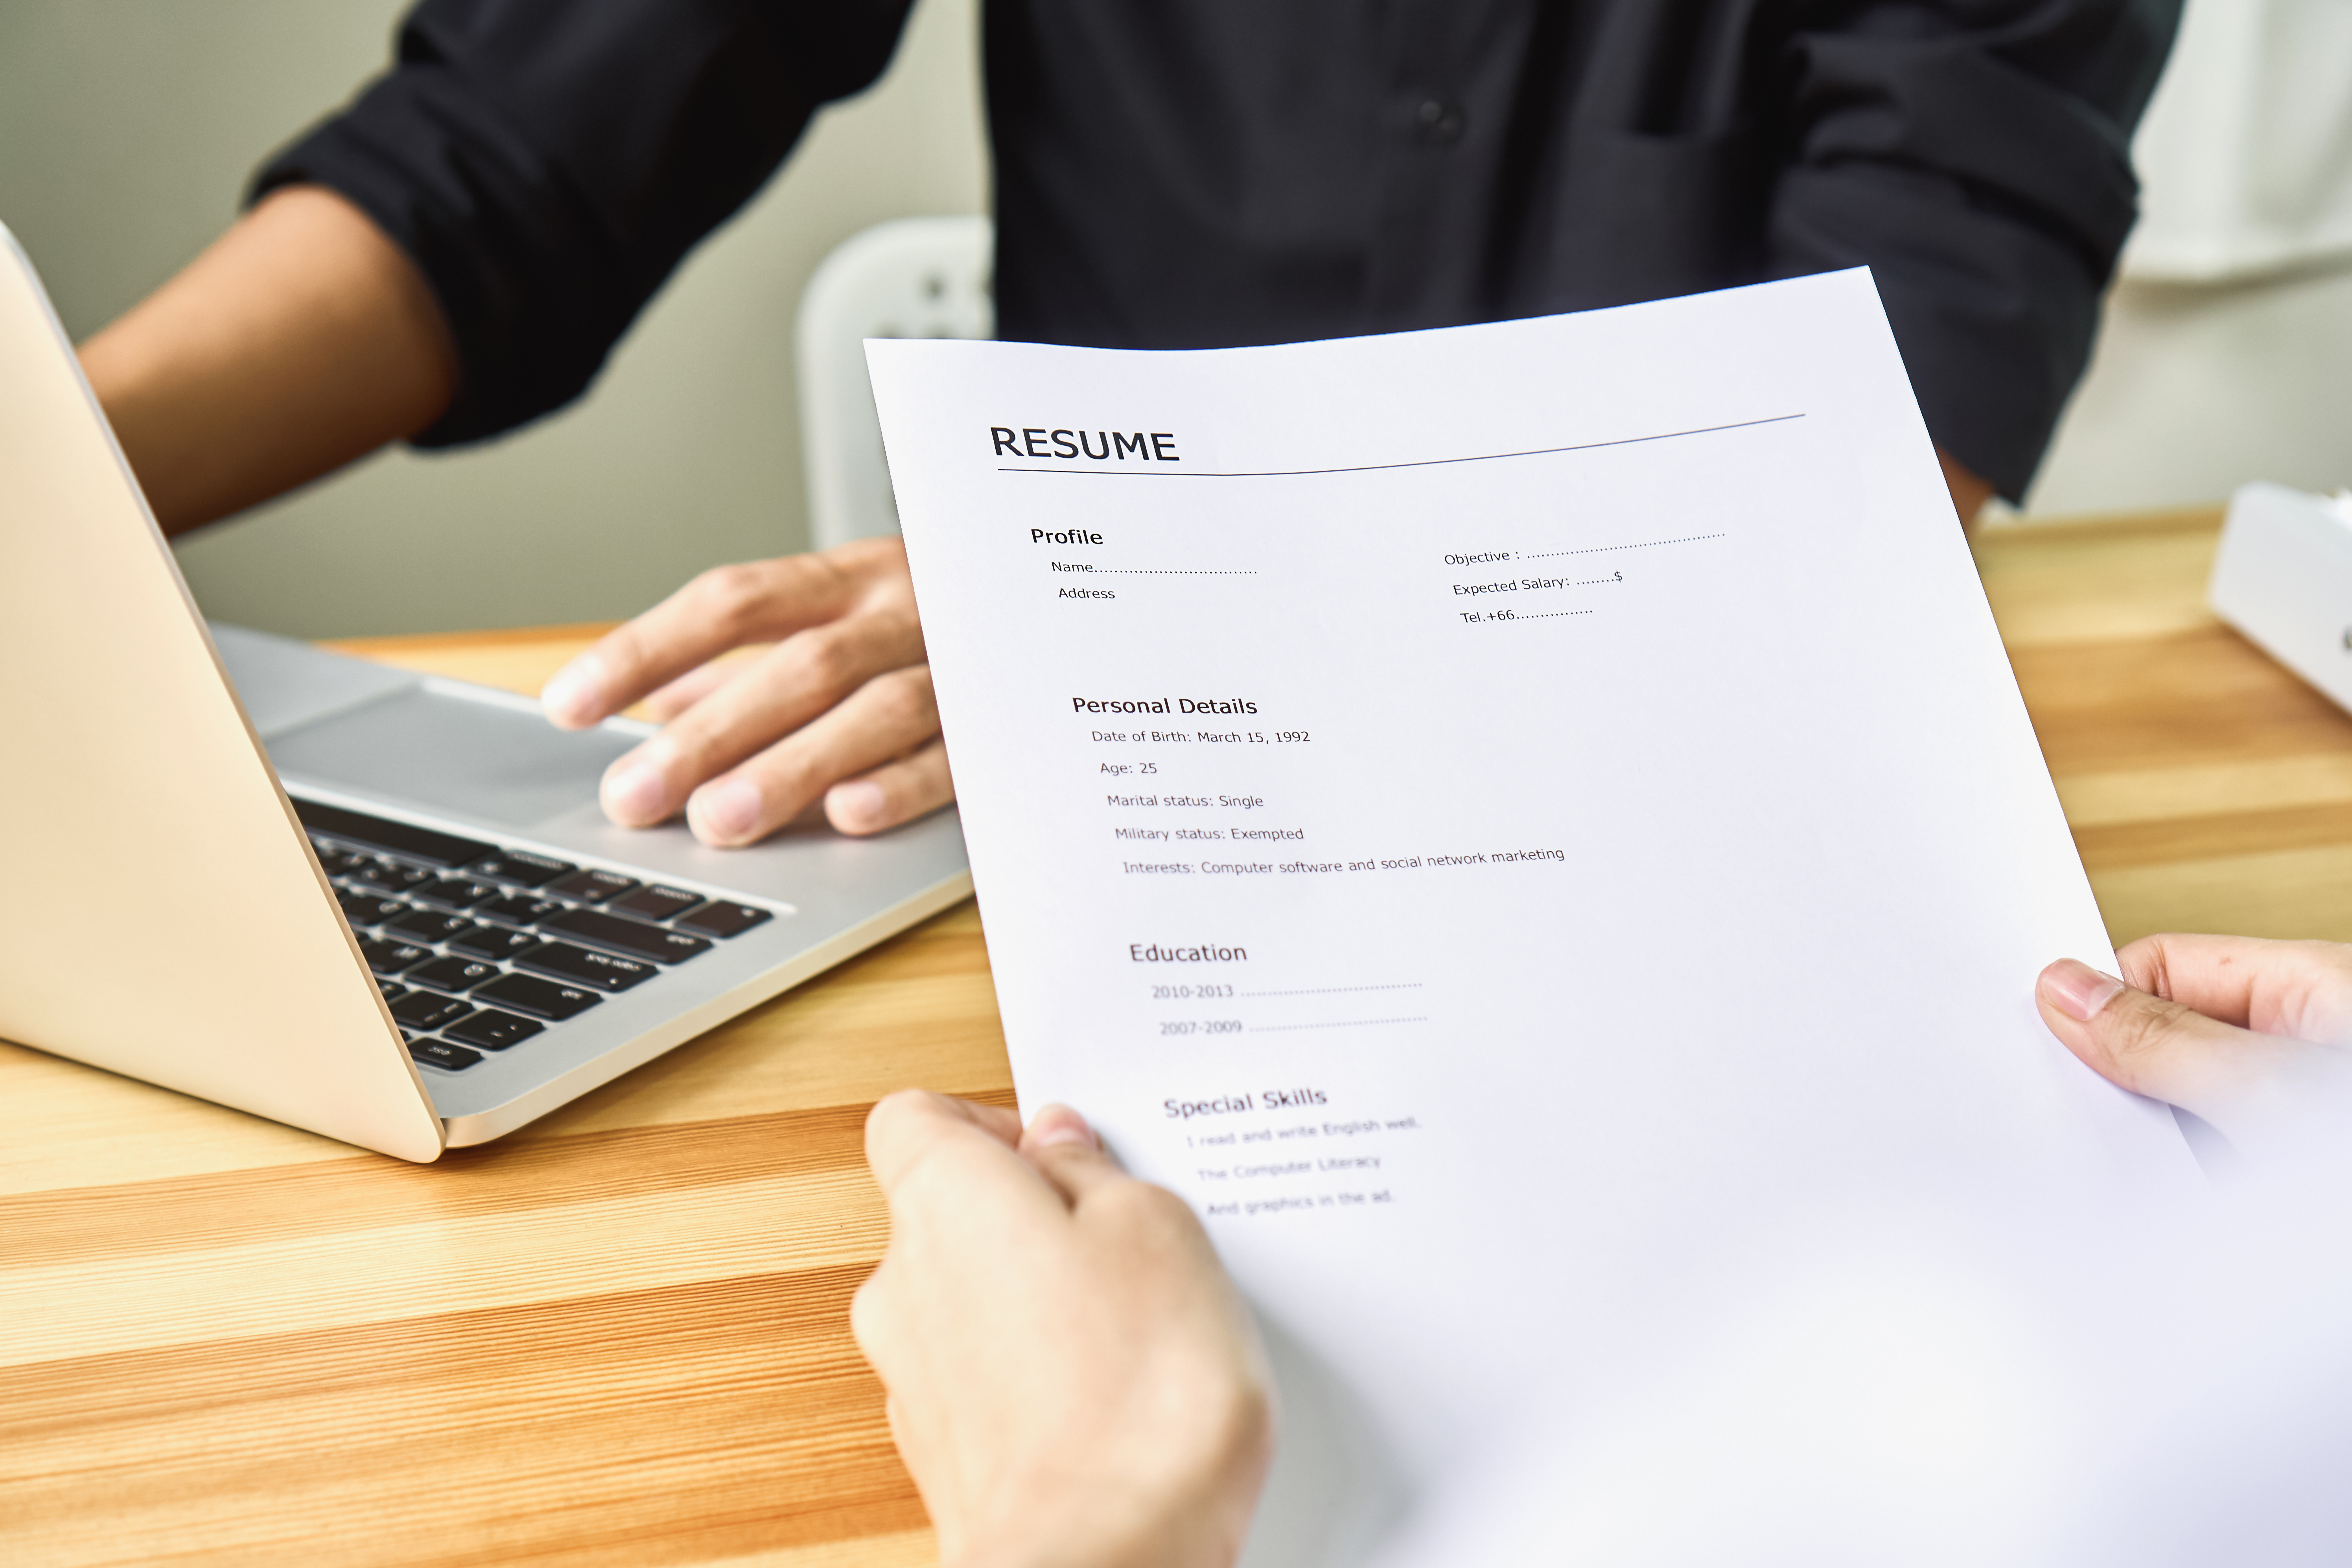 How to Properly List a Business Management Degree on a